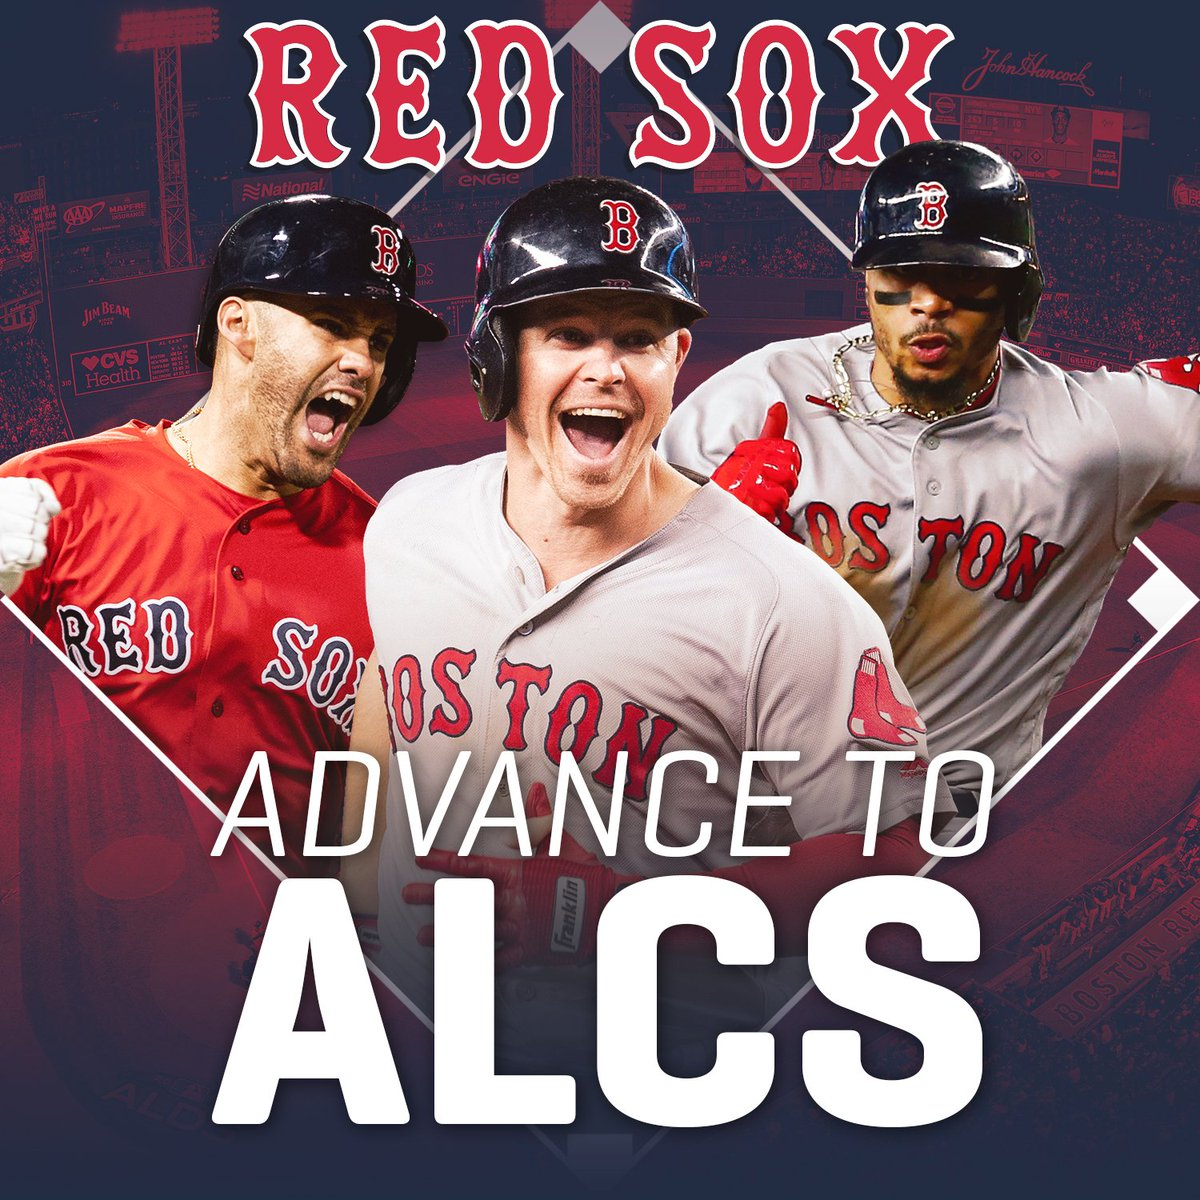 Timely batting + Chris Sale = An ALCS berth for #DirtyWater